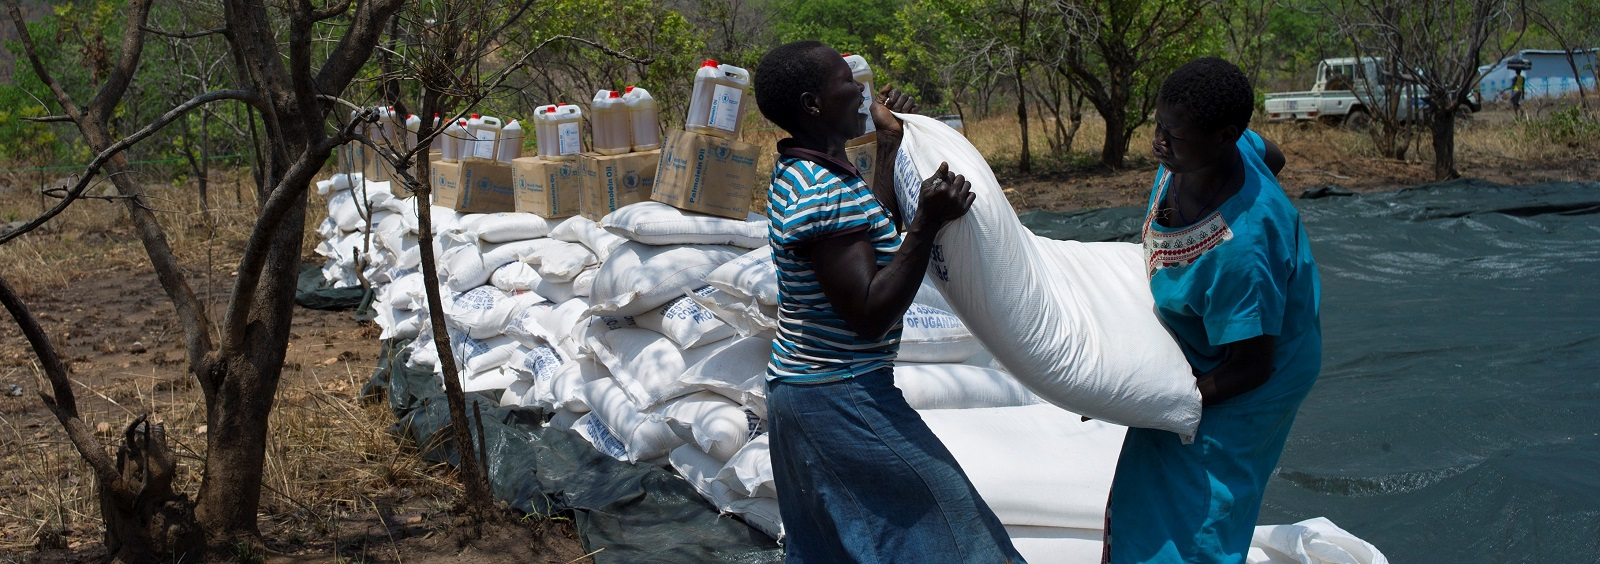 Refugees from South Sudan collect food from a distribution point on 23 February in Imvepi, Uganda (Photo: Dan Kitwood/Getty Images)